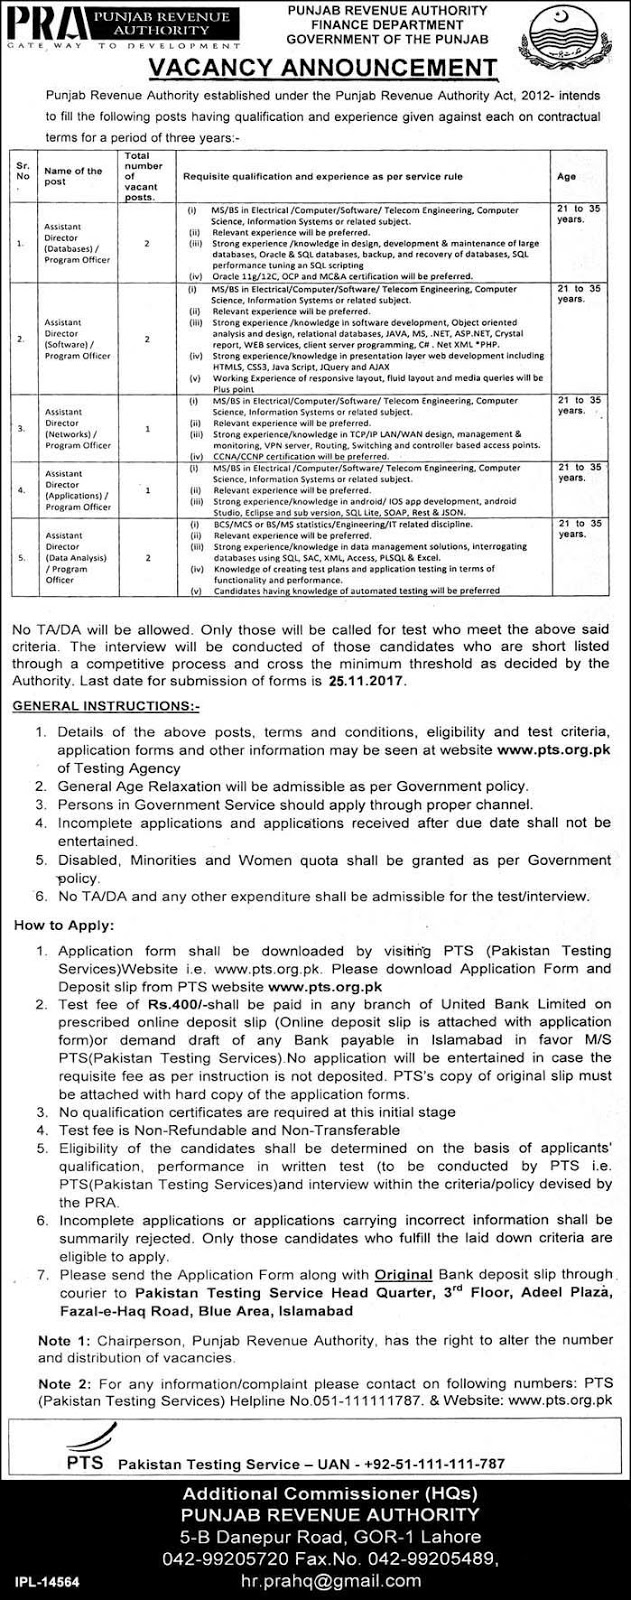 Punjab Revenue Authority vacancies 2017,punjab jobs,electrical engineering jobs,IT jobs